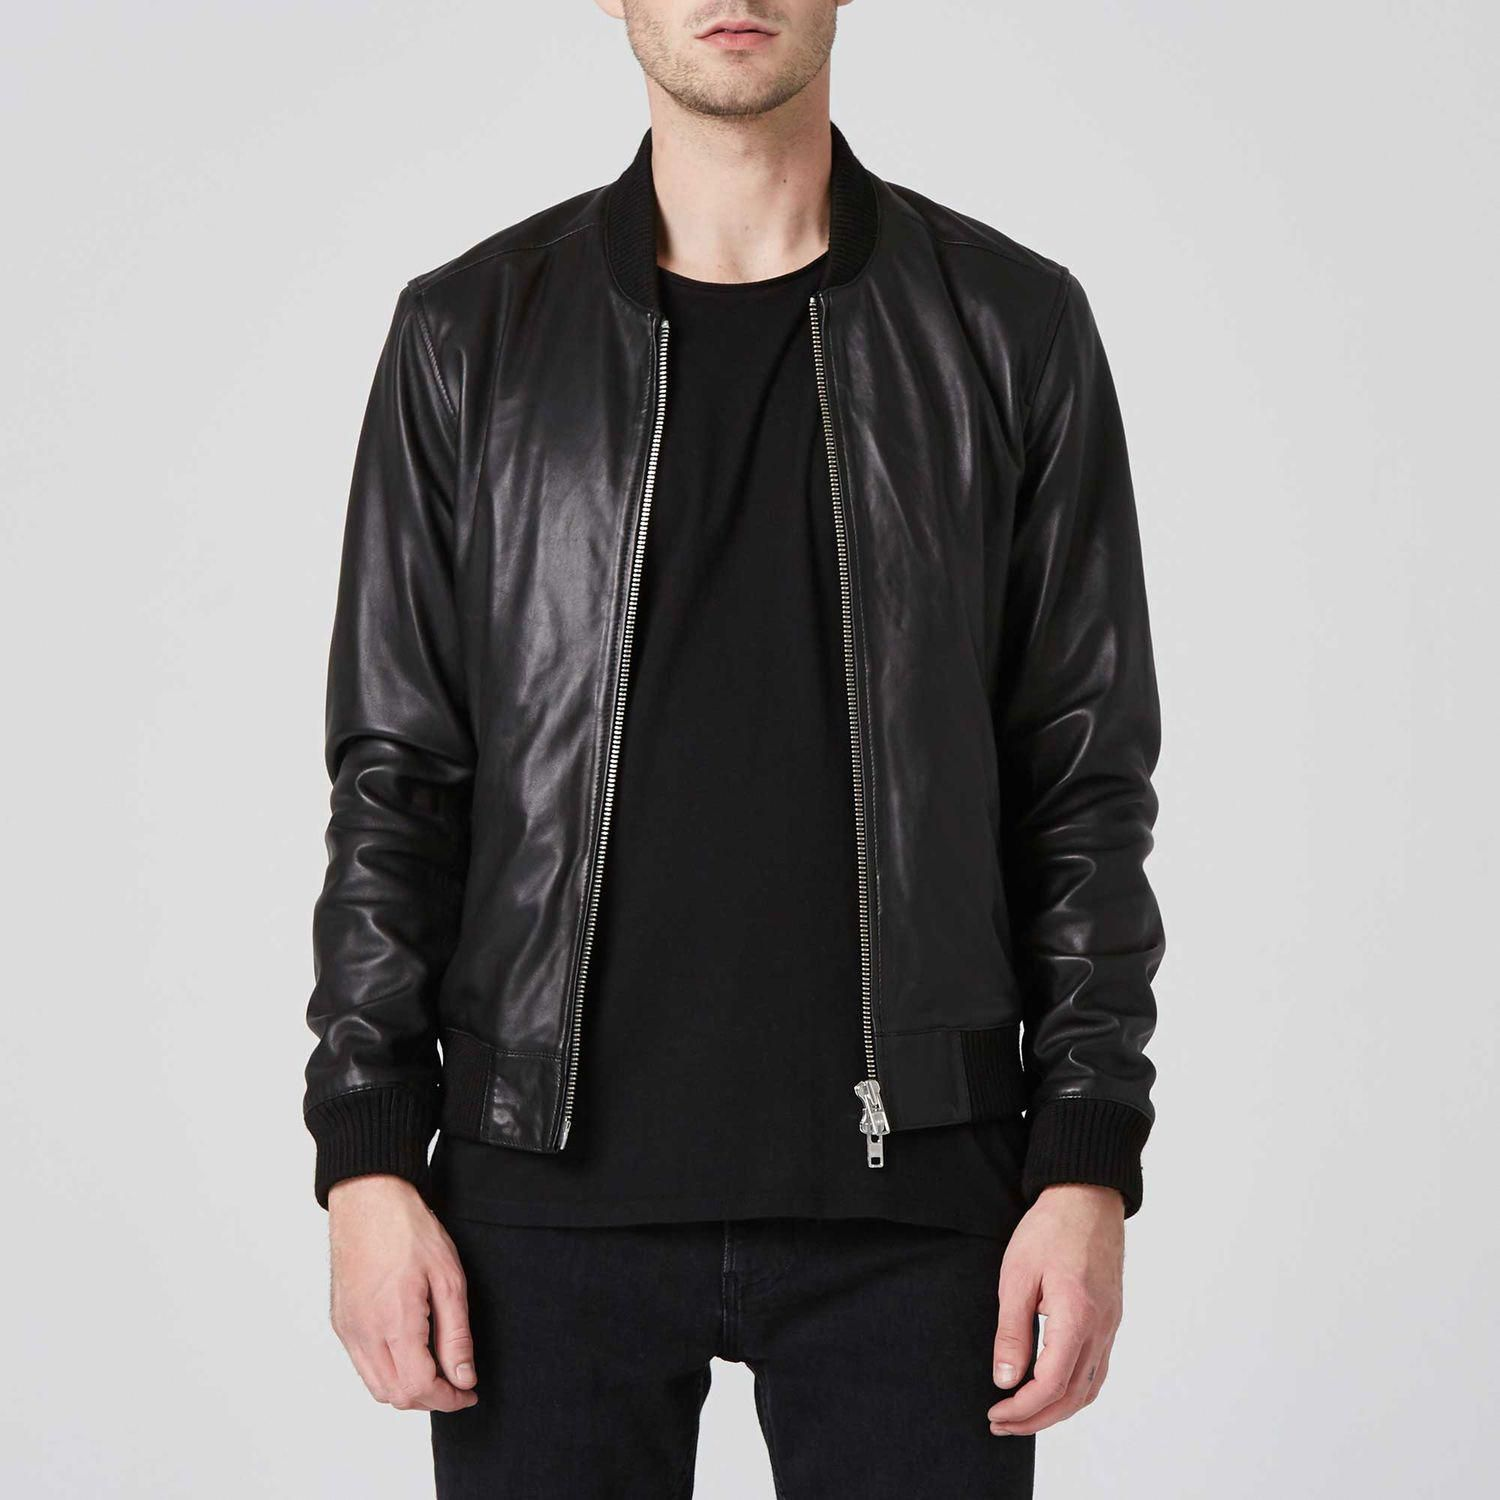 Leather Bomber Jacket in Black 1 Leather bomber jacket